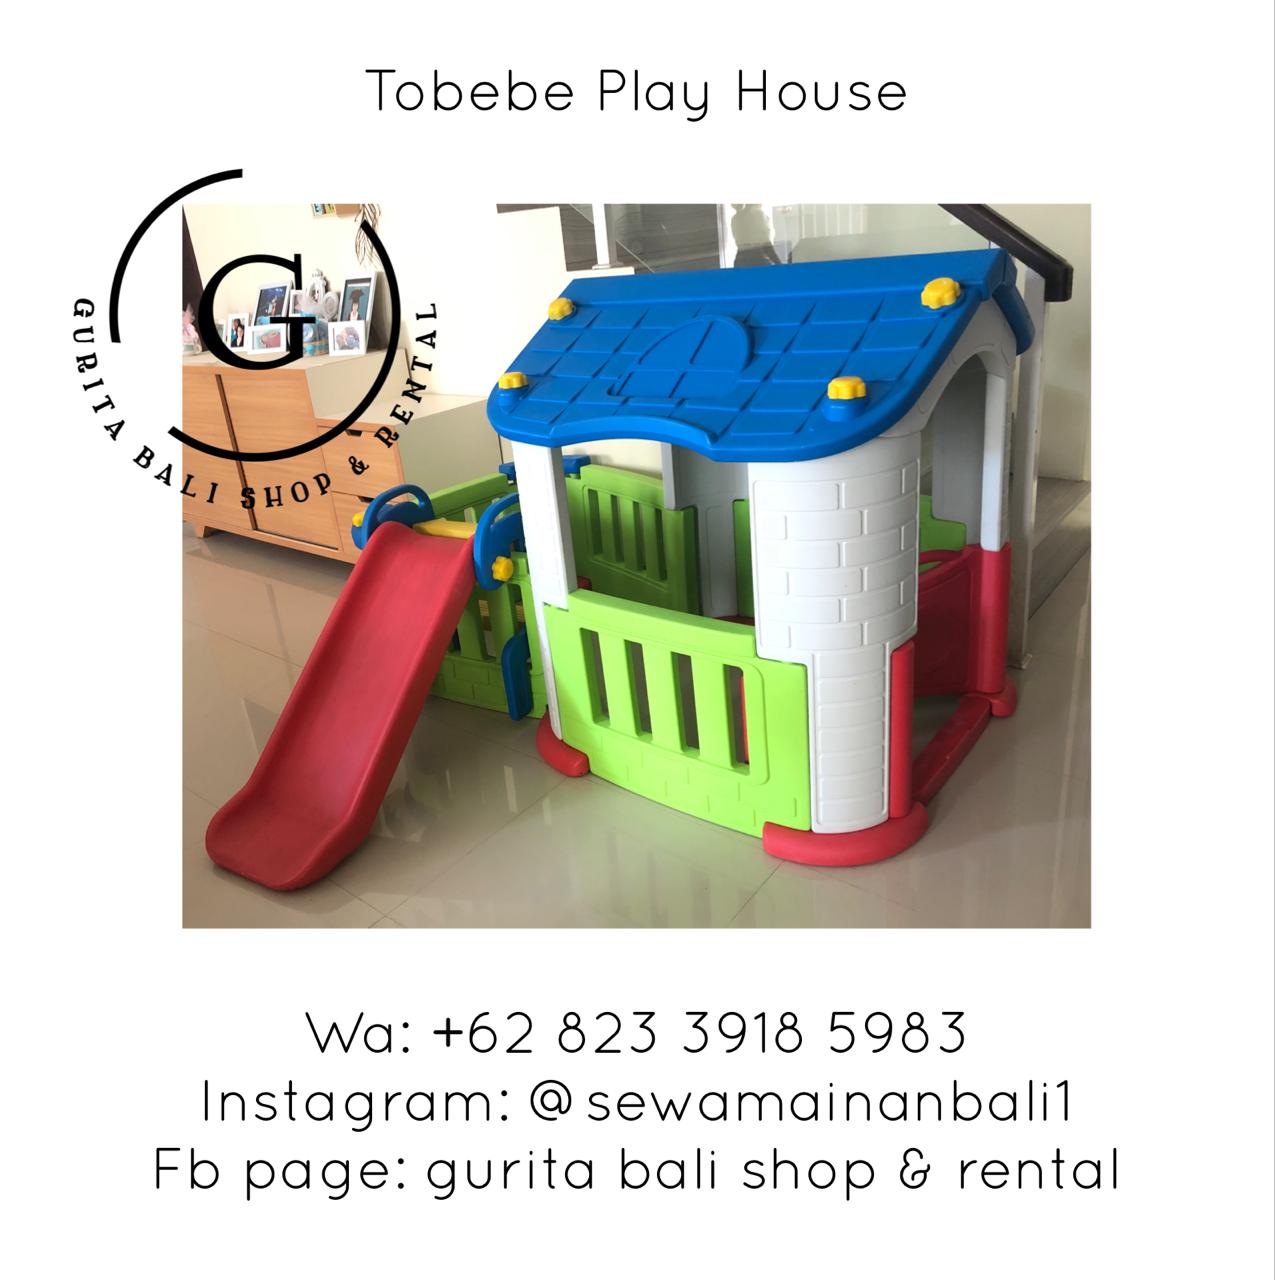 TOBEBE PLAY HOUSE